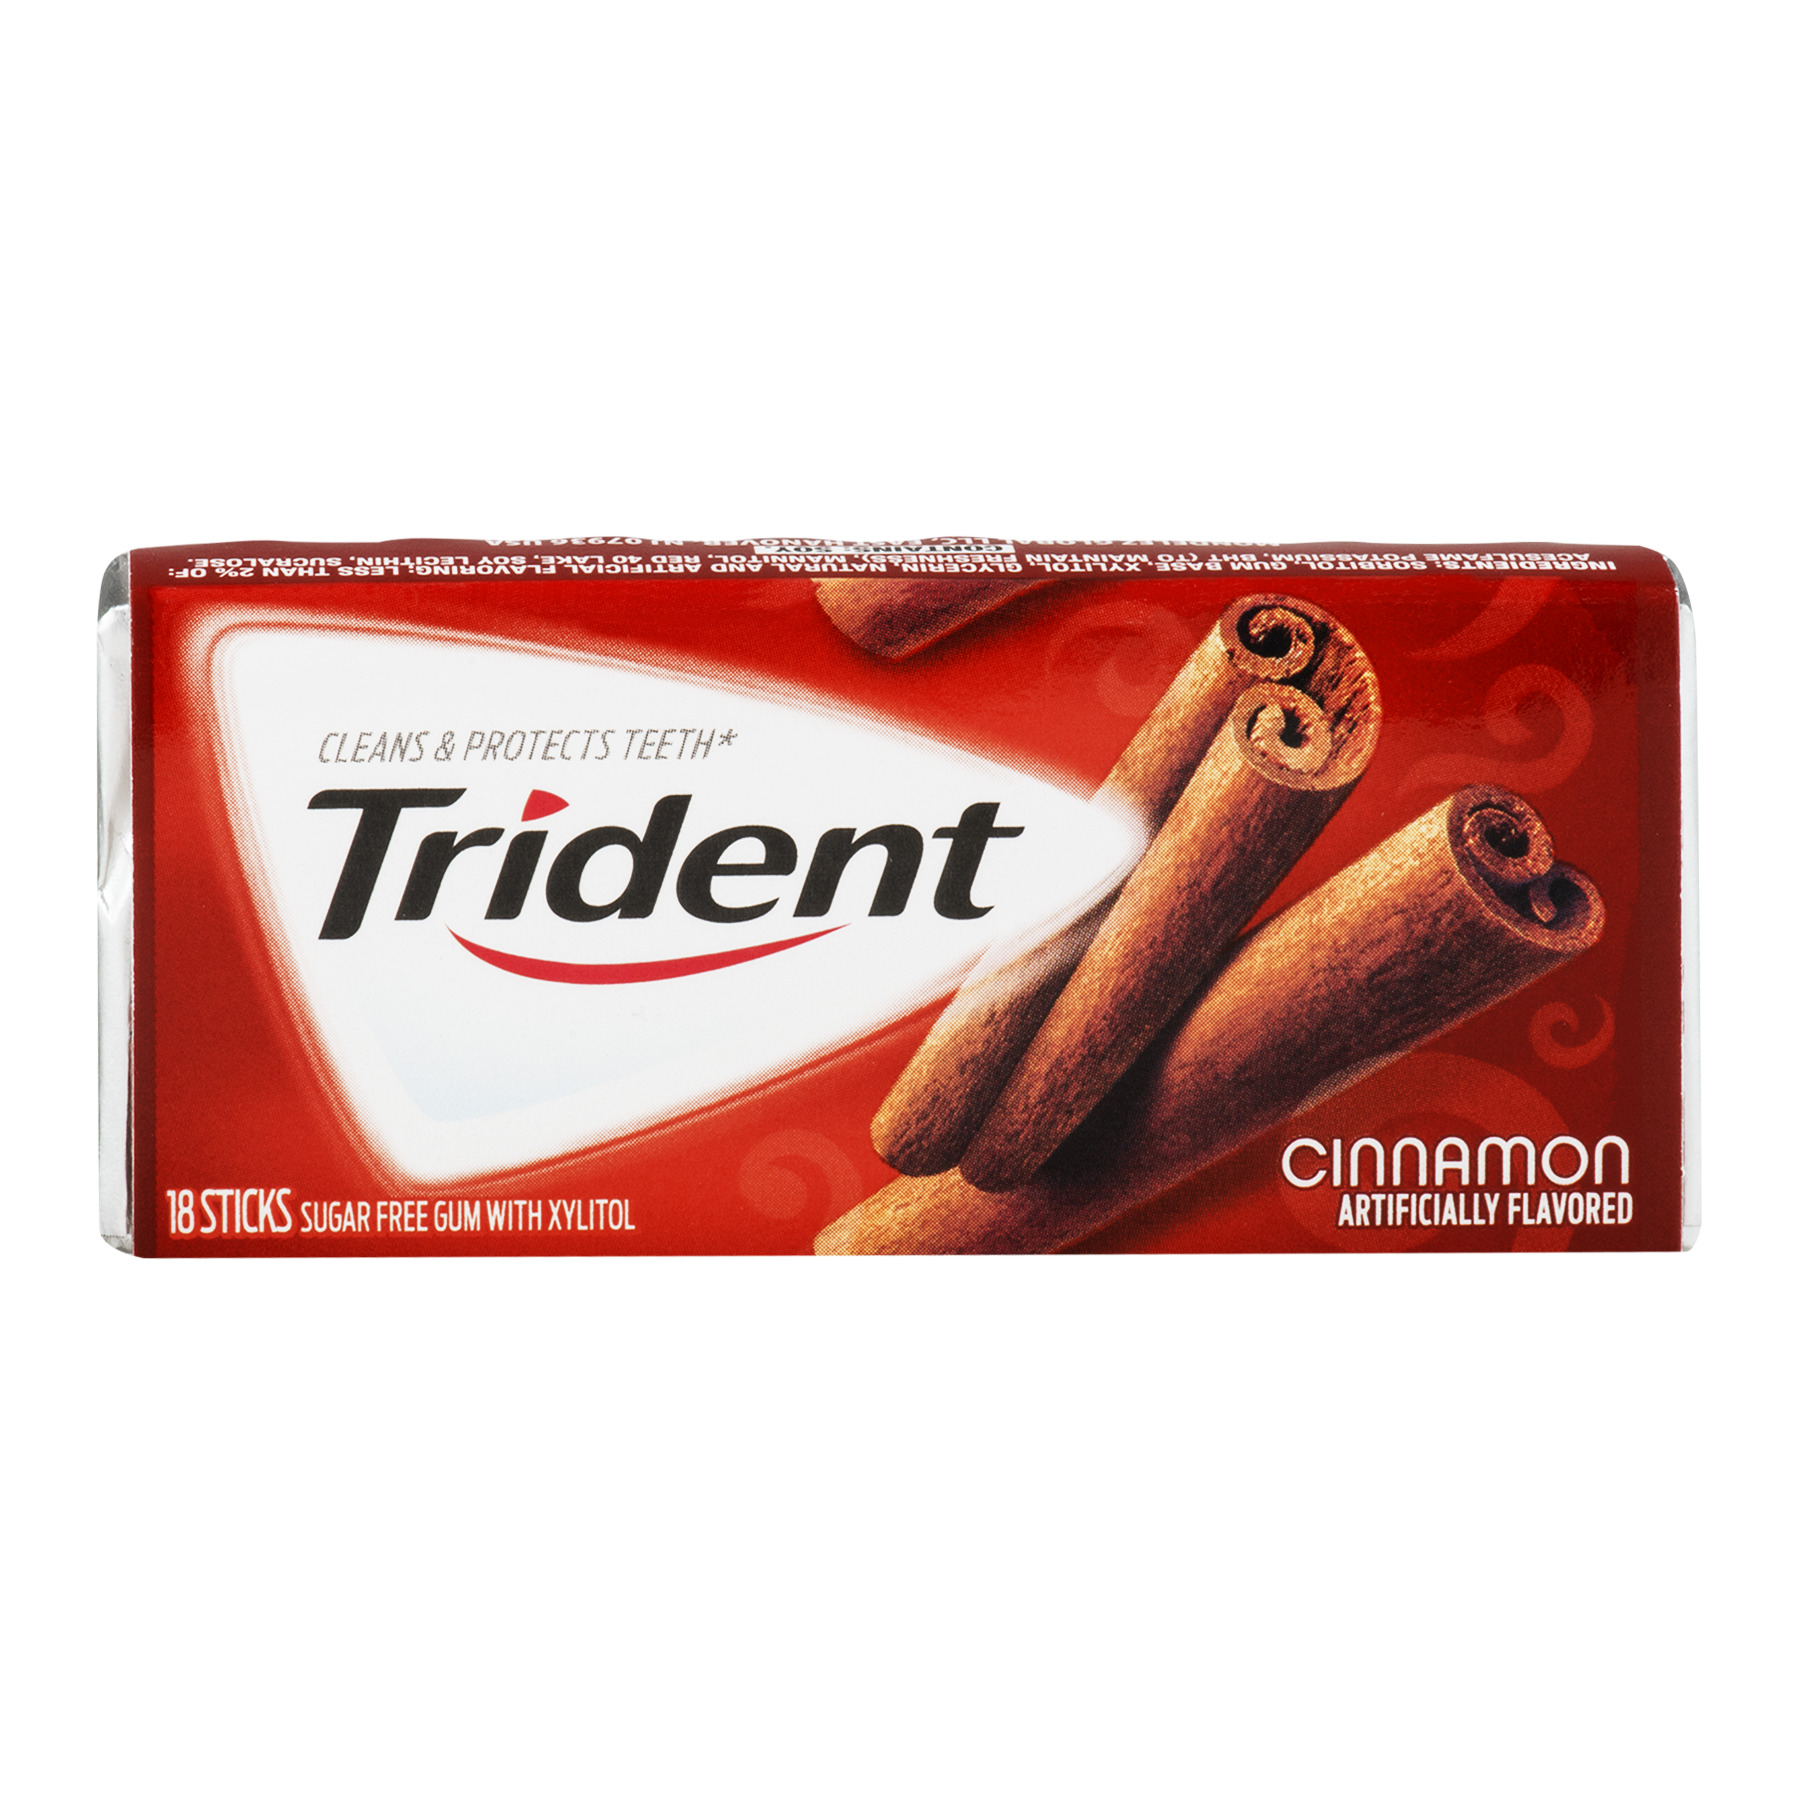 Trident Cinnamon Sugar Free Gum with Xylitol, 18 count